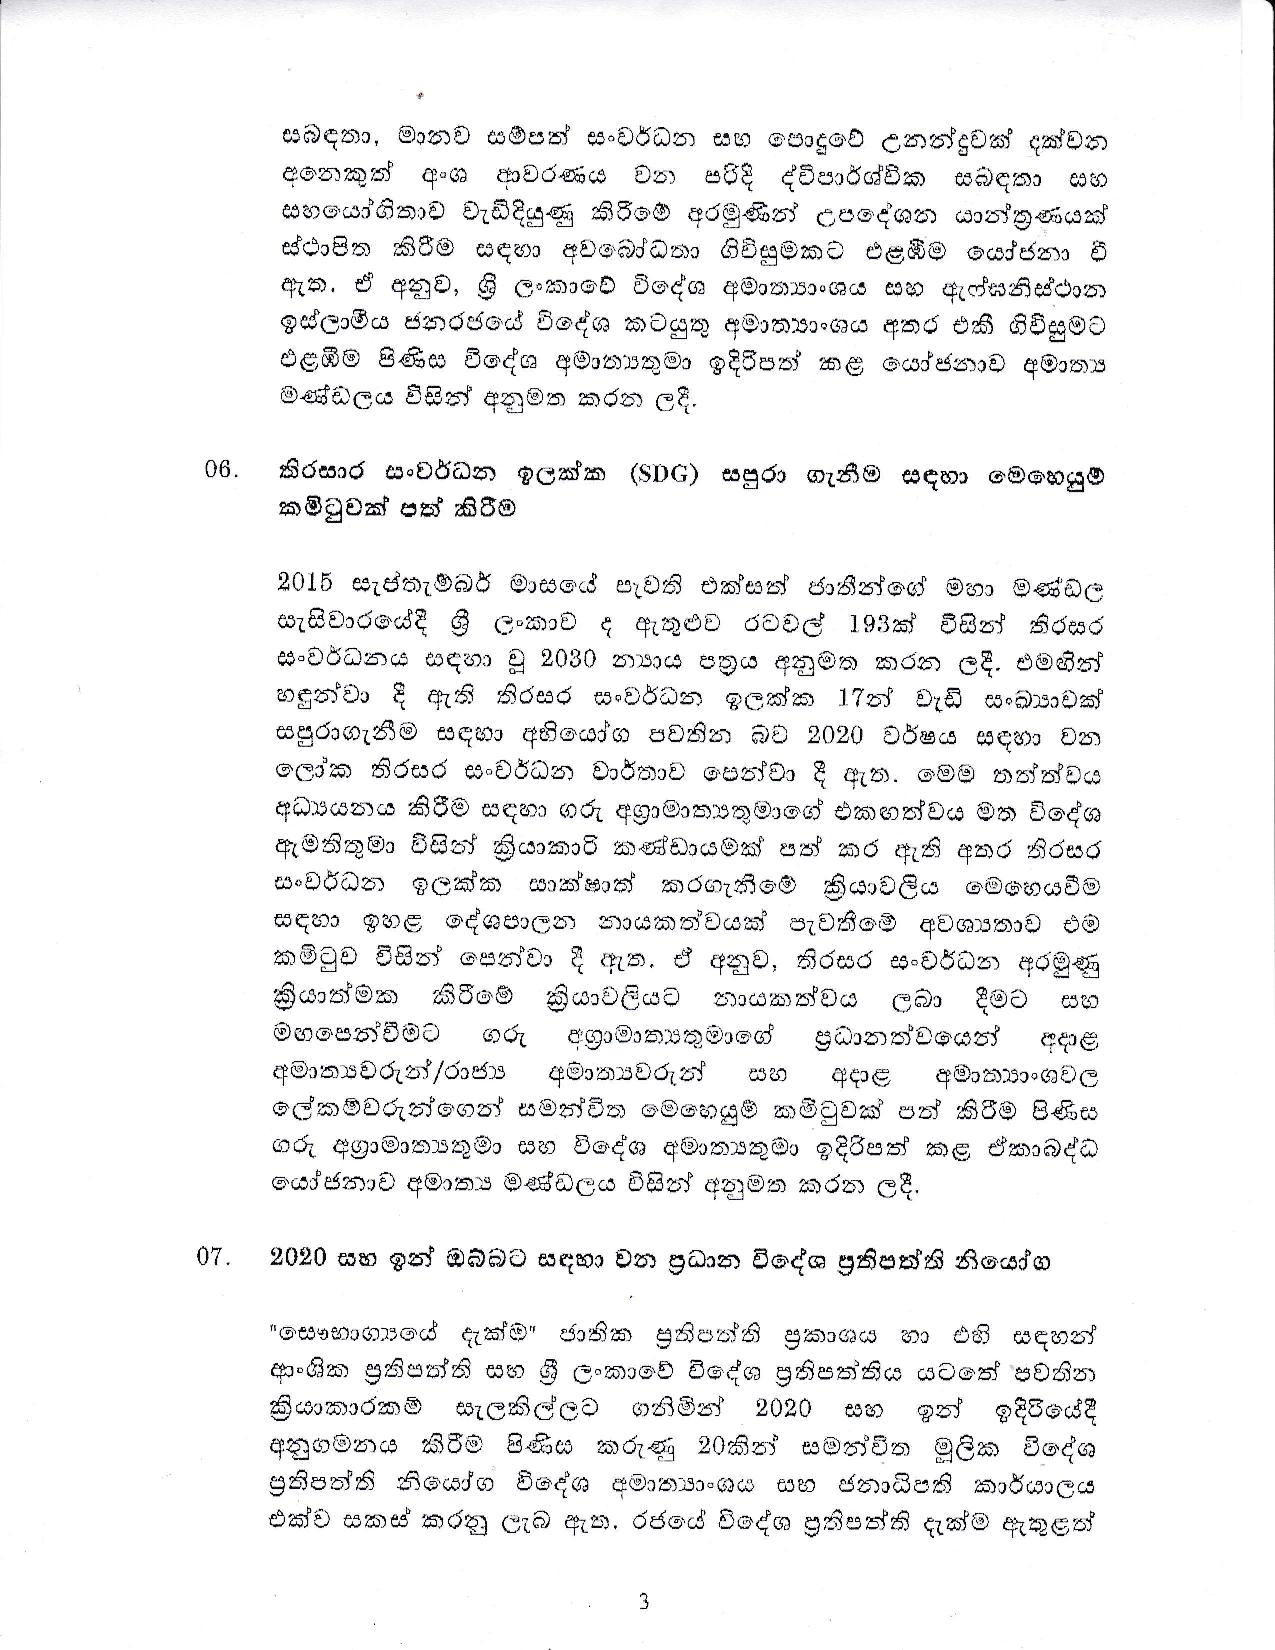 Cabinet Decision on 04.01.2021 page 003